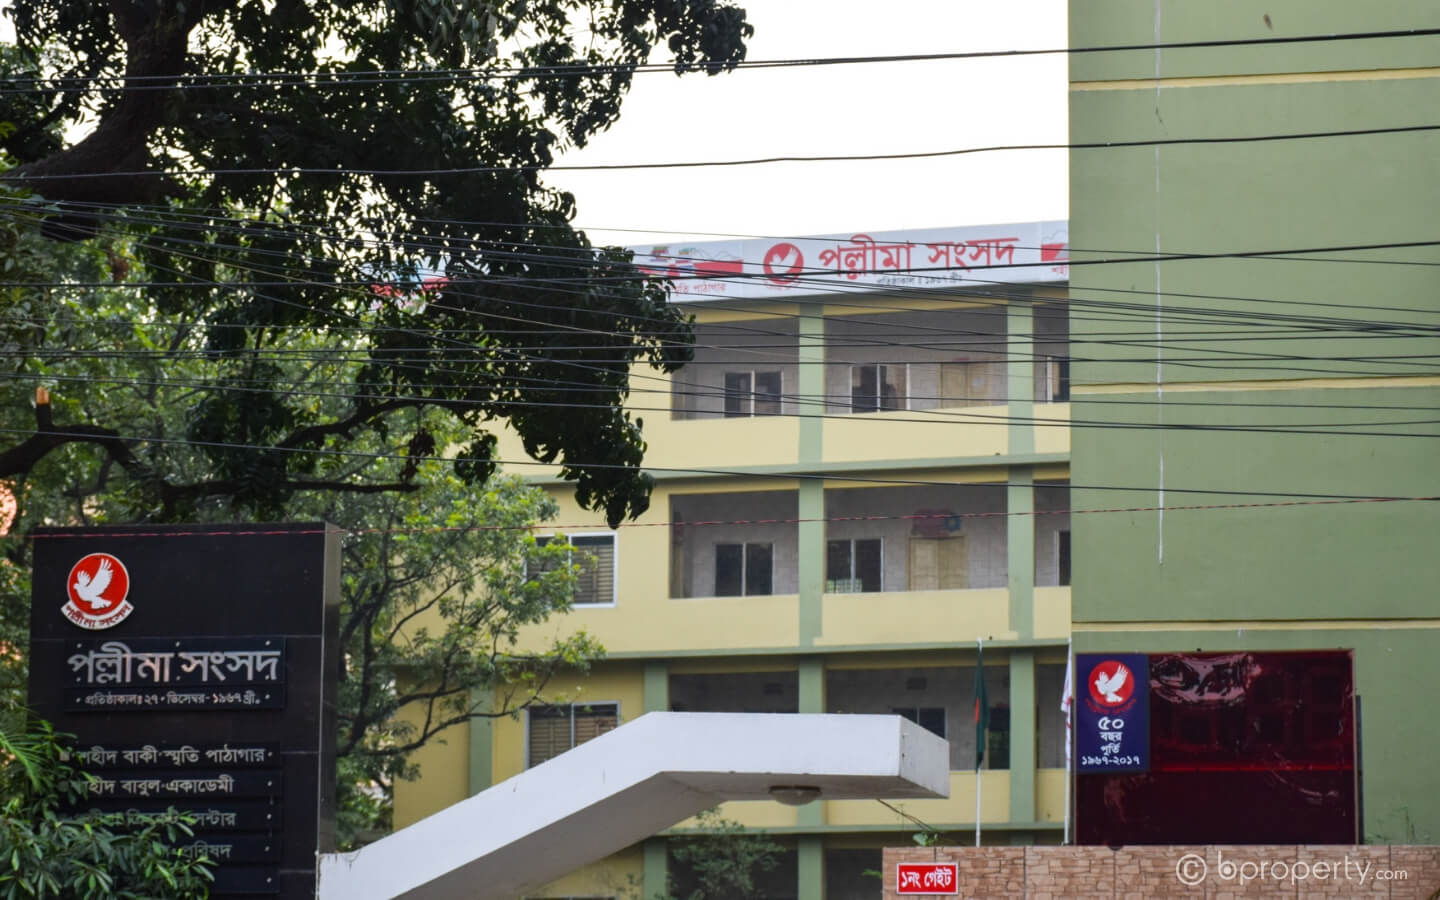 Living in Khilgaon allows access to great schools